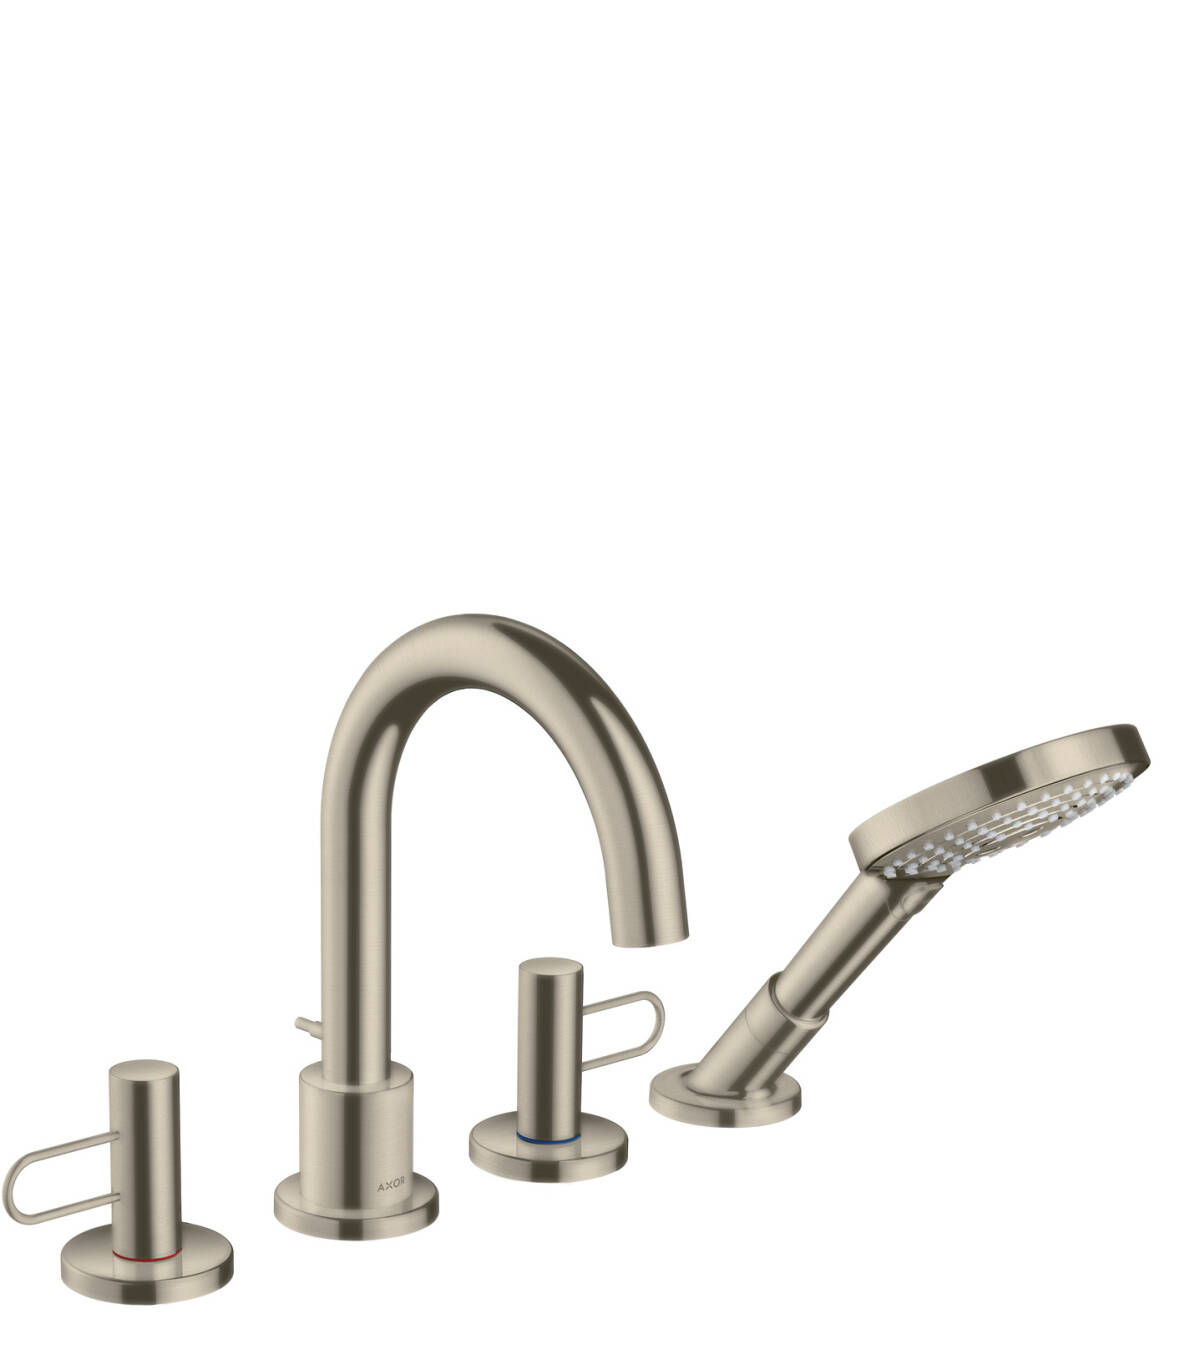 4-hole rim mounted bath mixer loop handle, Brushed Nickel, 38445820